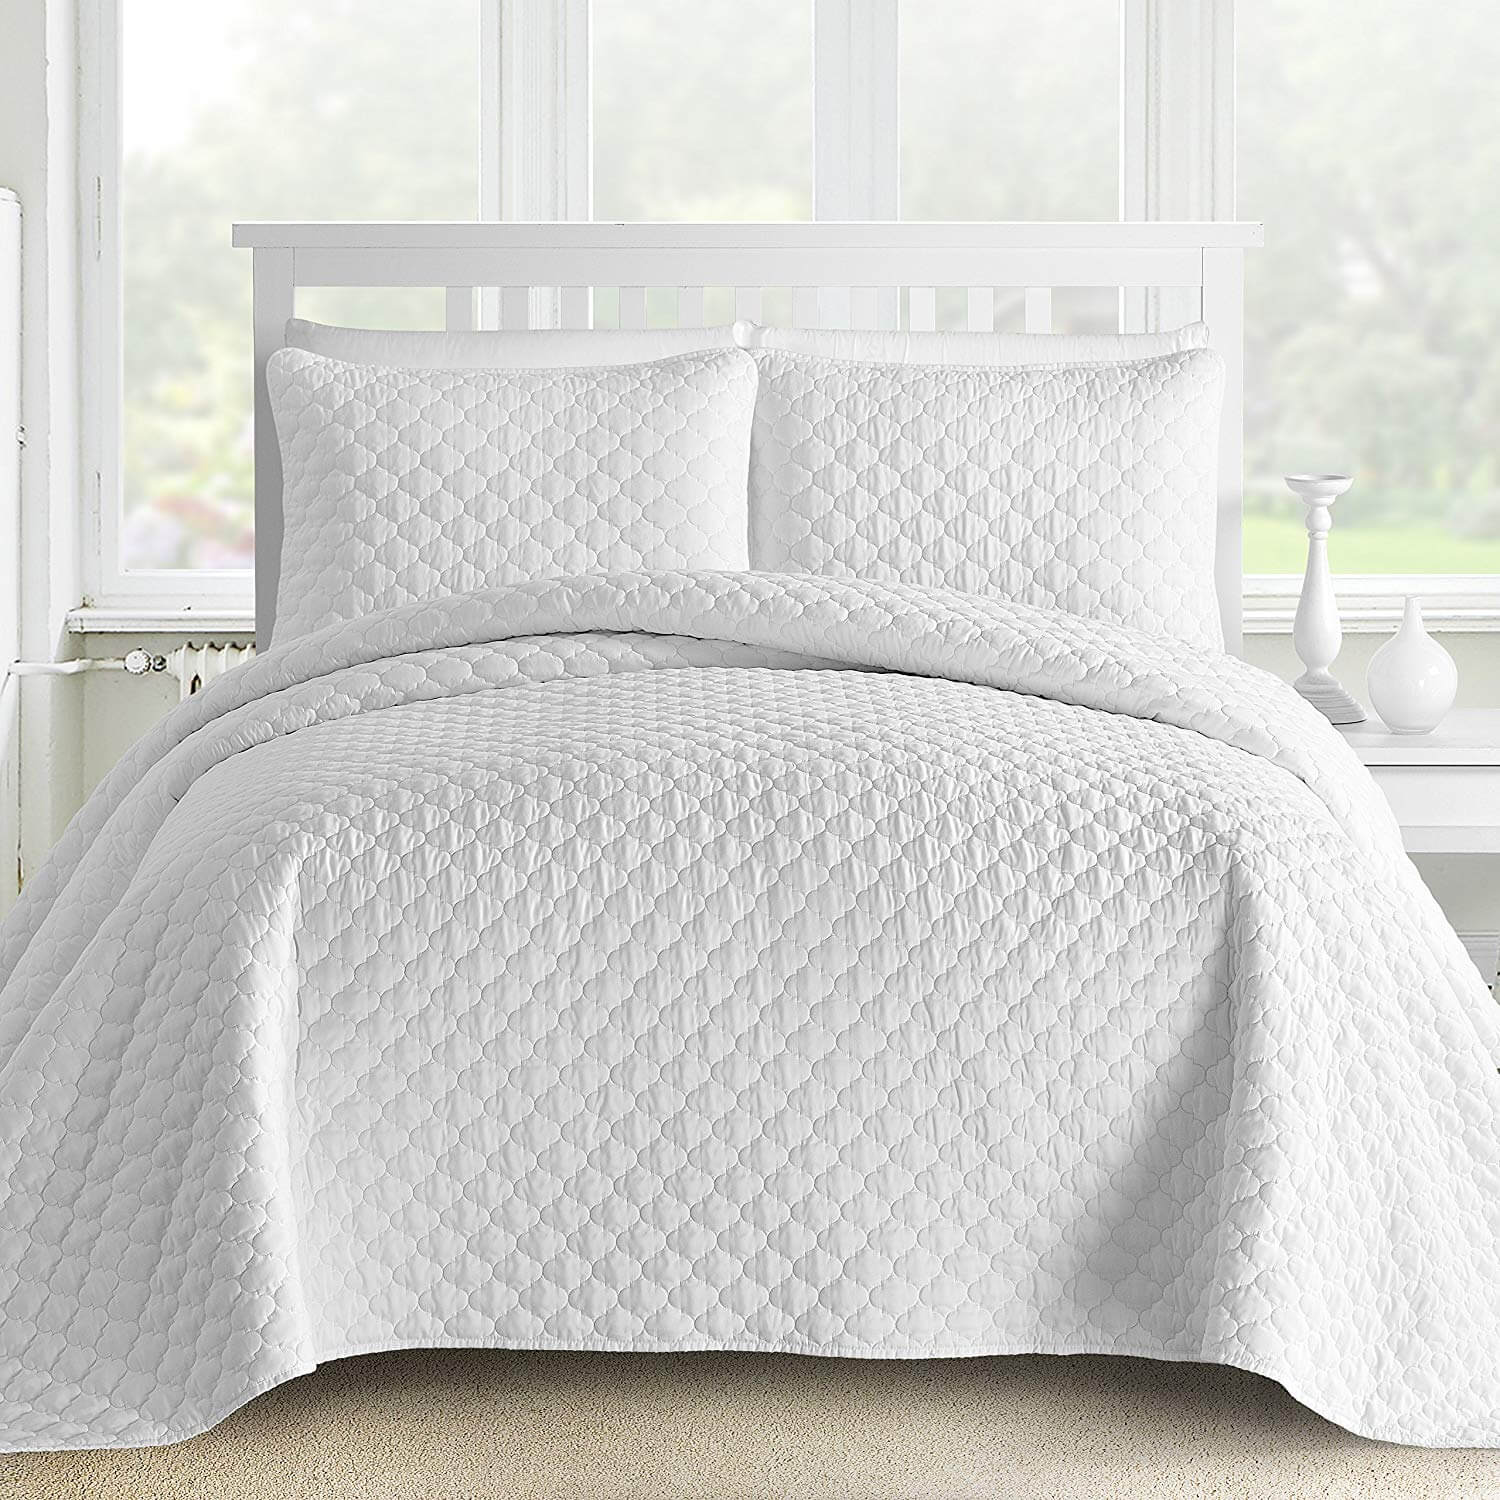 9. 3-Piece Bedspread Coverlet Set Oversized and Prewashed Lantern Ogee